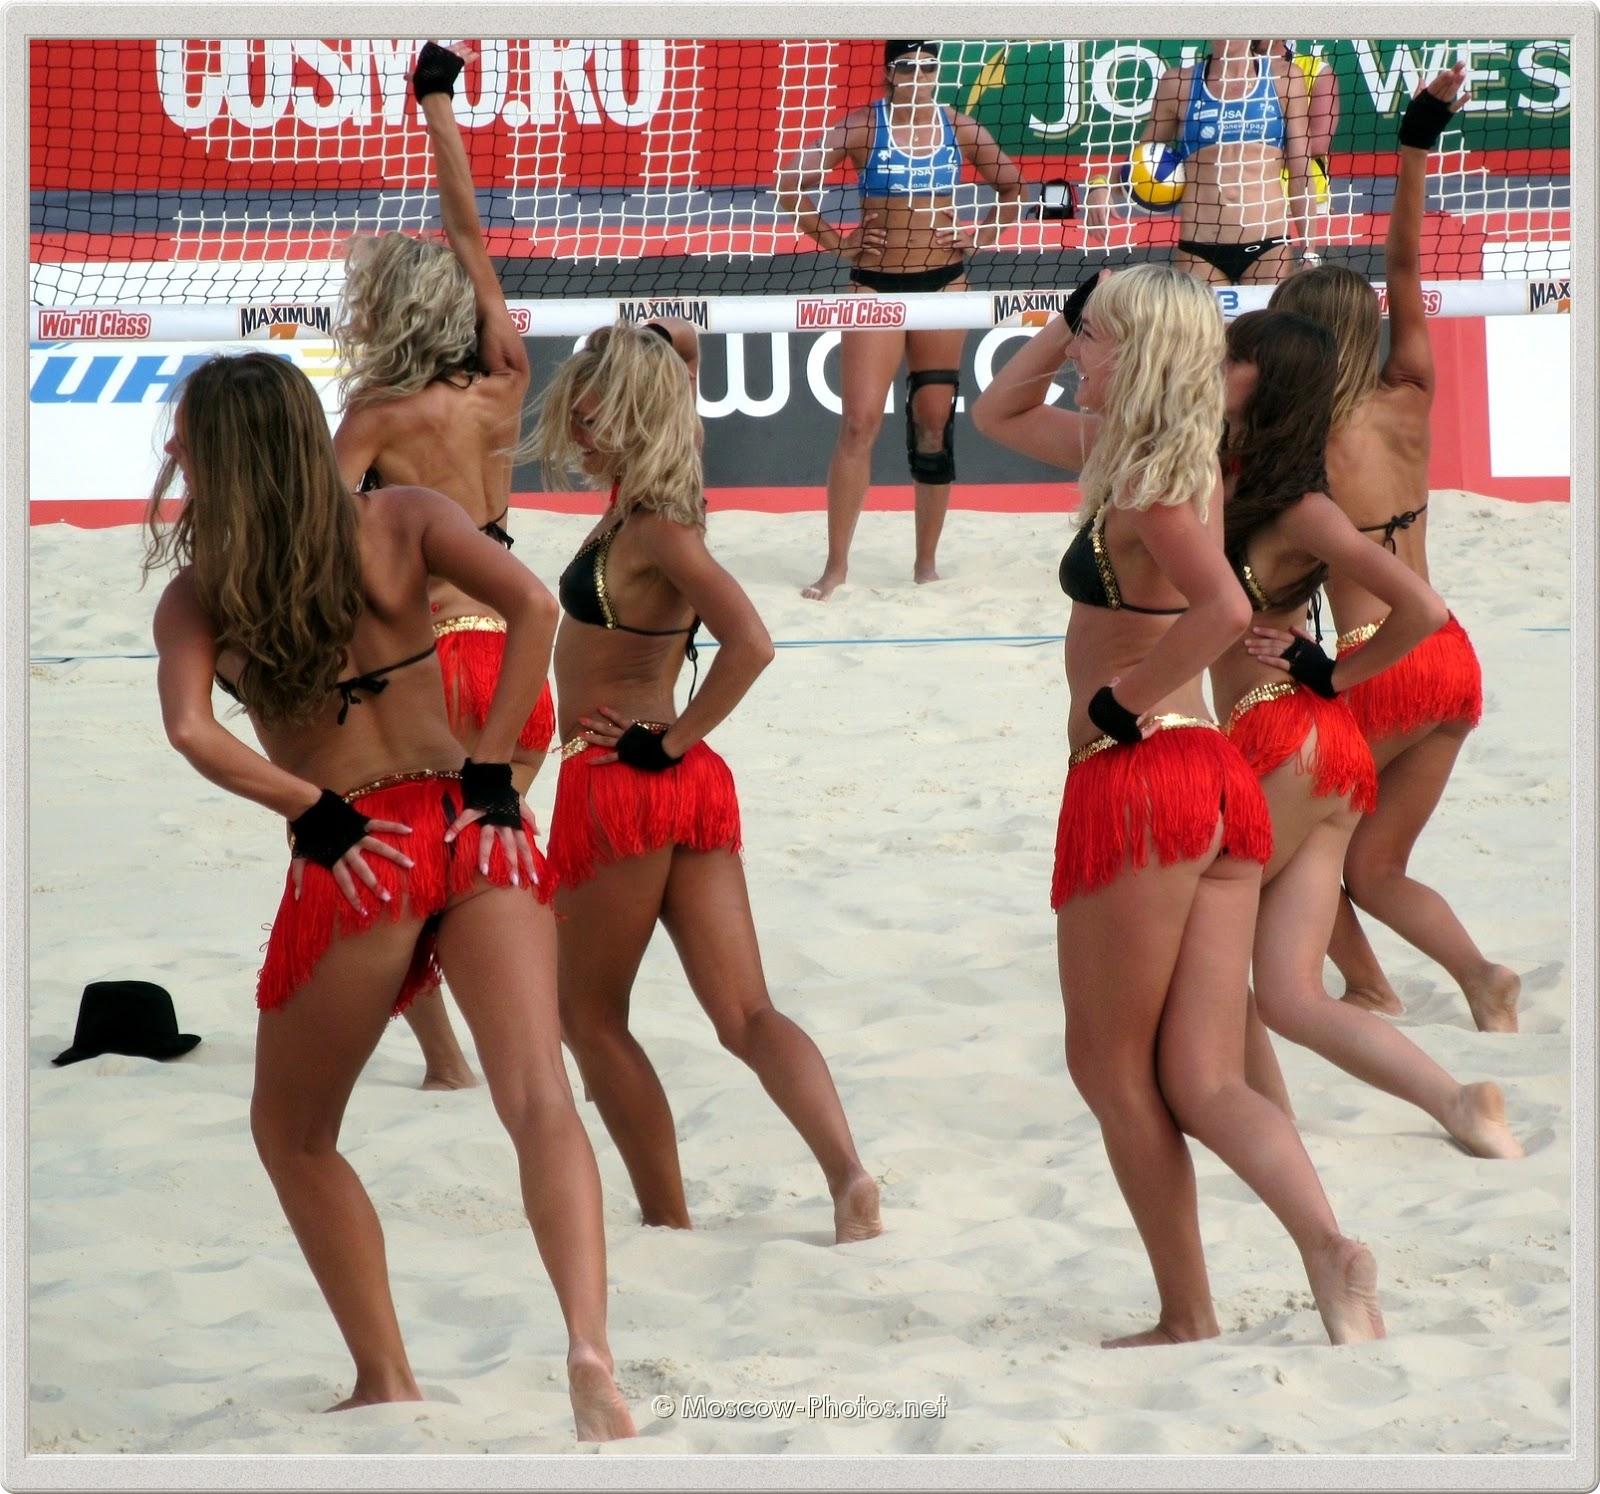 Beach Volleyball Girls in Red Mini Skirts